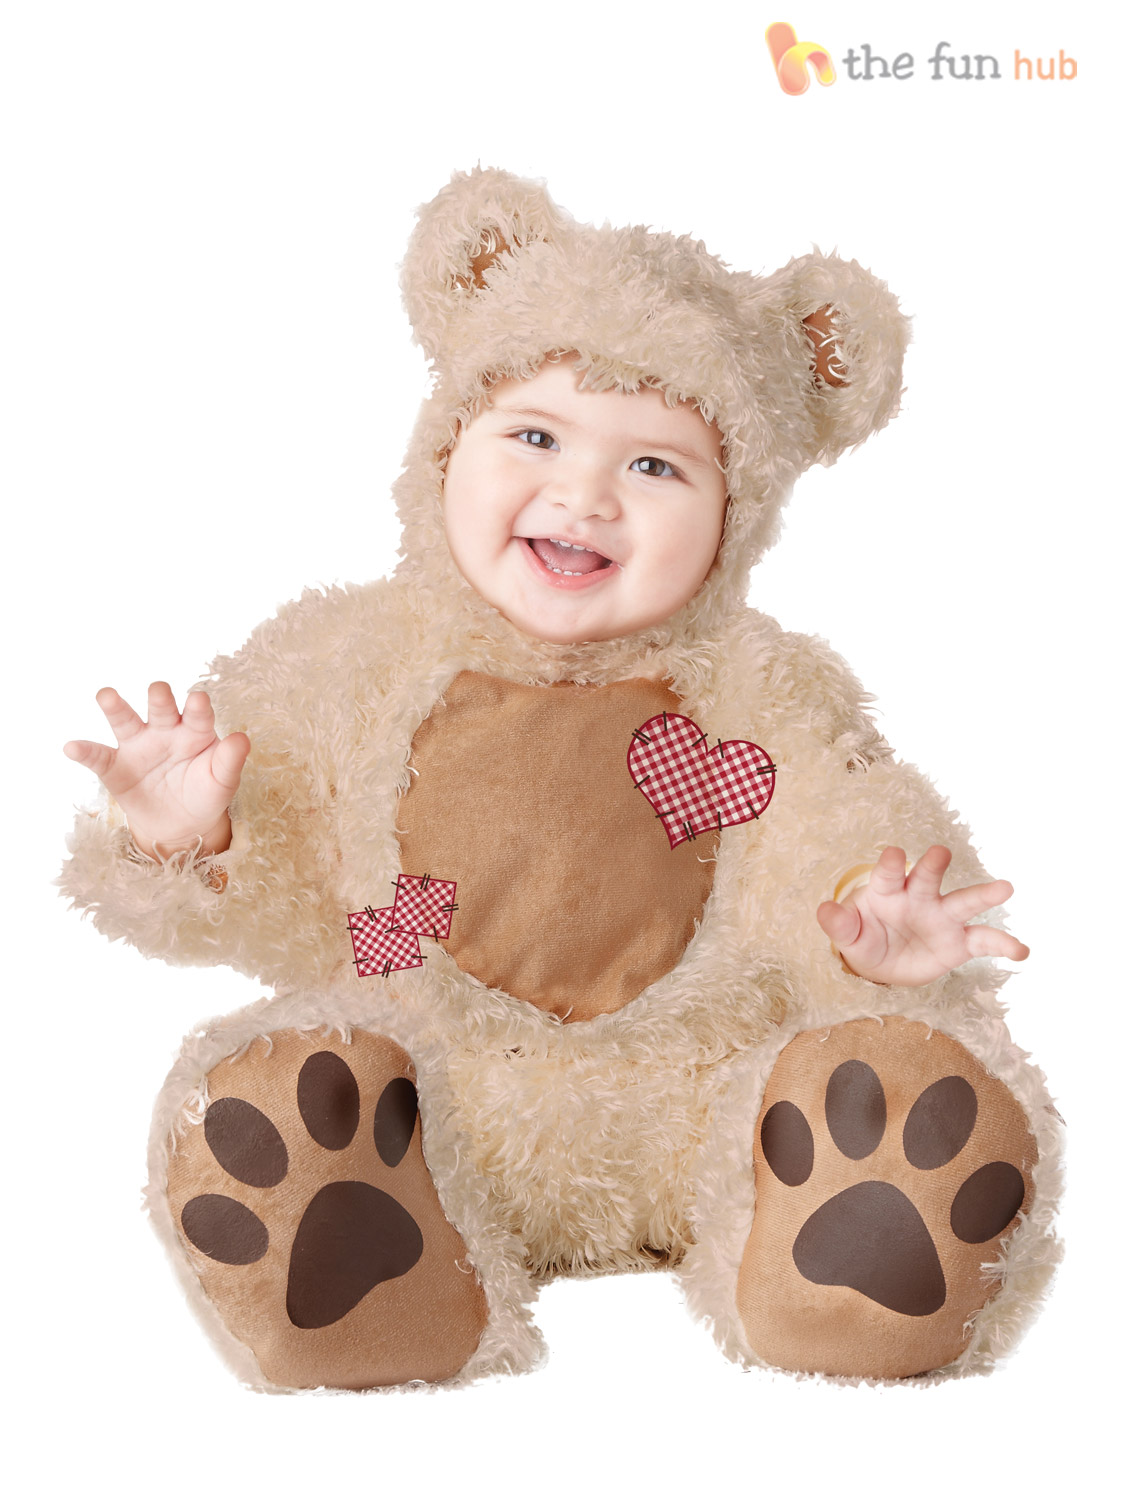 Baby Fancy Dress Costumes. Fancy dress isn't just for older children, babies can join in the fun as well with our range of baby fancy dress, but beware these costumes are super cute! from animals to their favourite Disney characters, these costumes make great gifts.